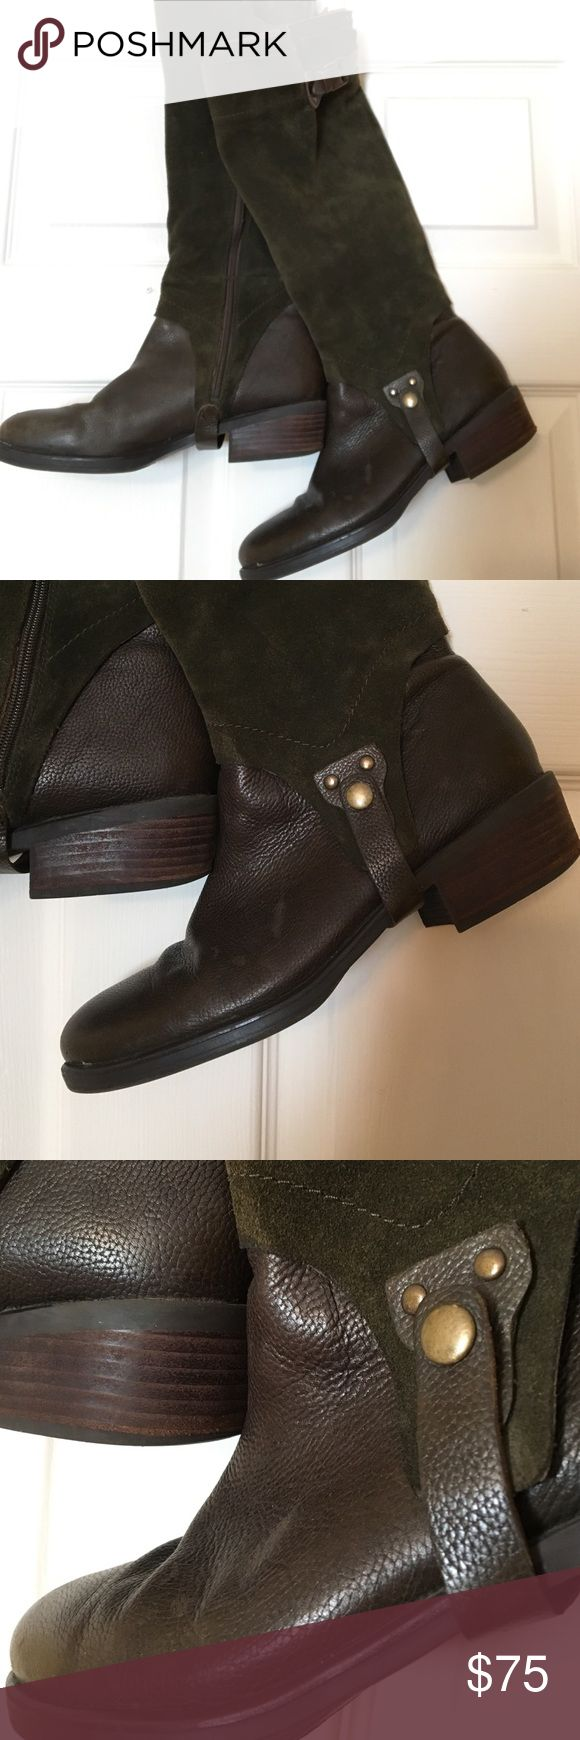 Suede Riding Boots Gorgeous green suede riding boots! Franco Sarto 8.5. Worn once. Lovely fall staple with great detail. Franco Sarto Shoes Winter & Rain Boots